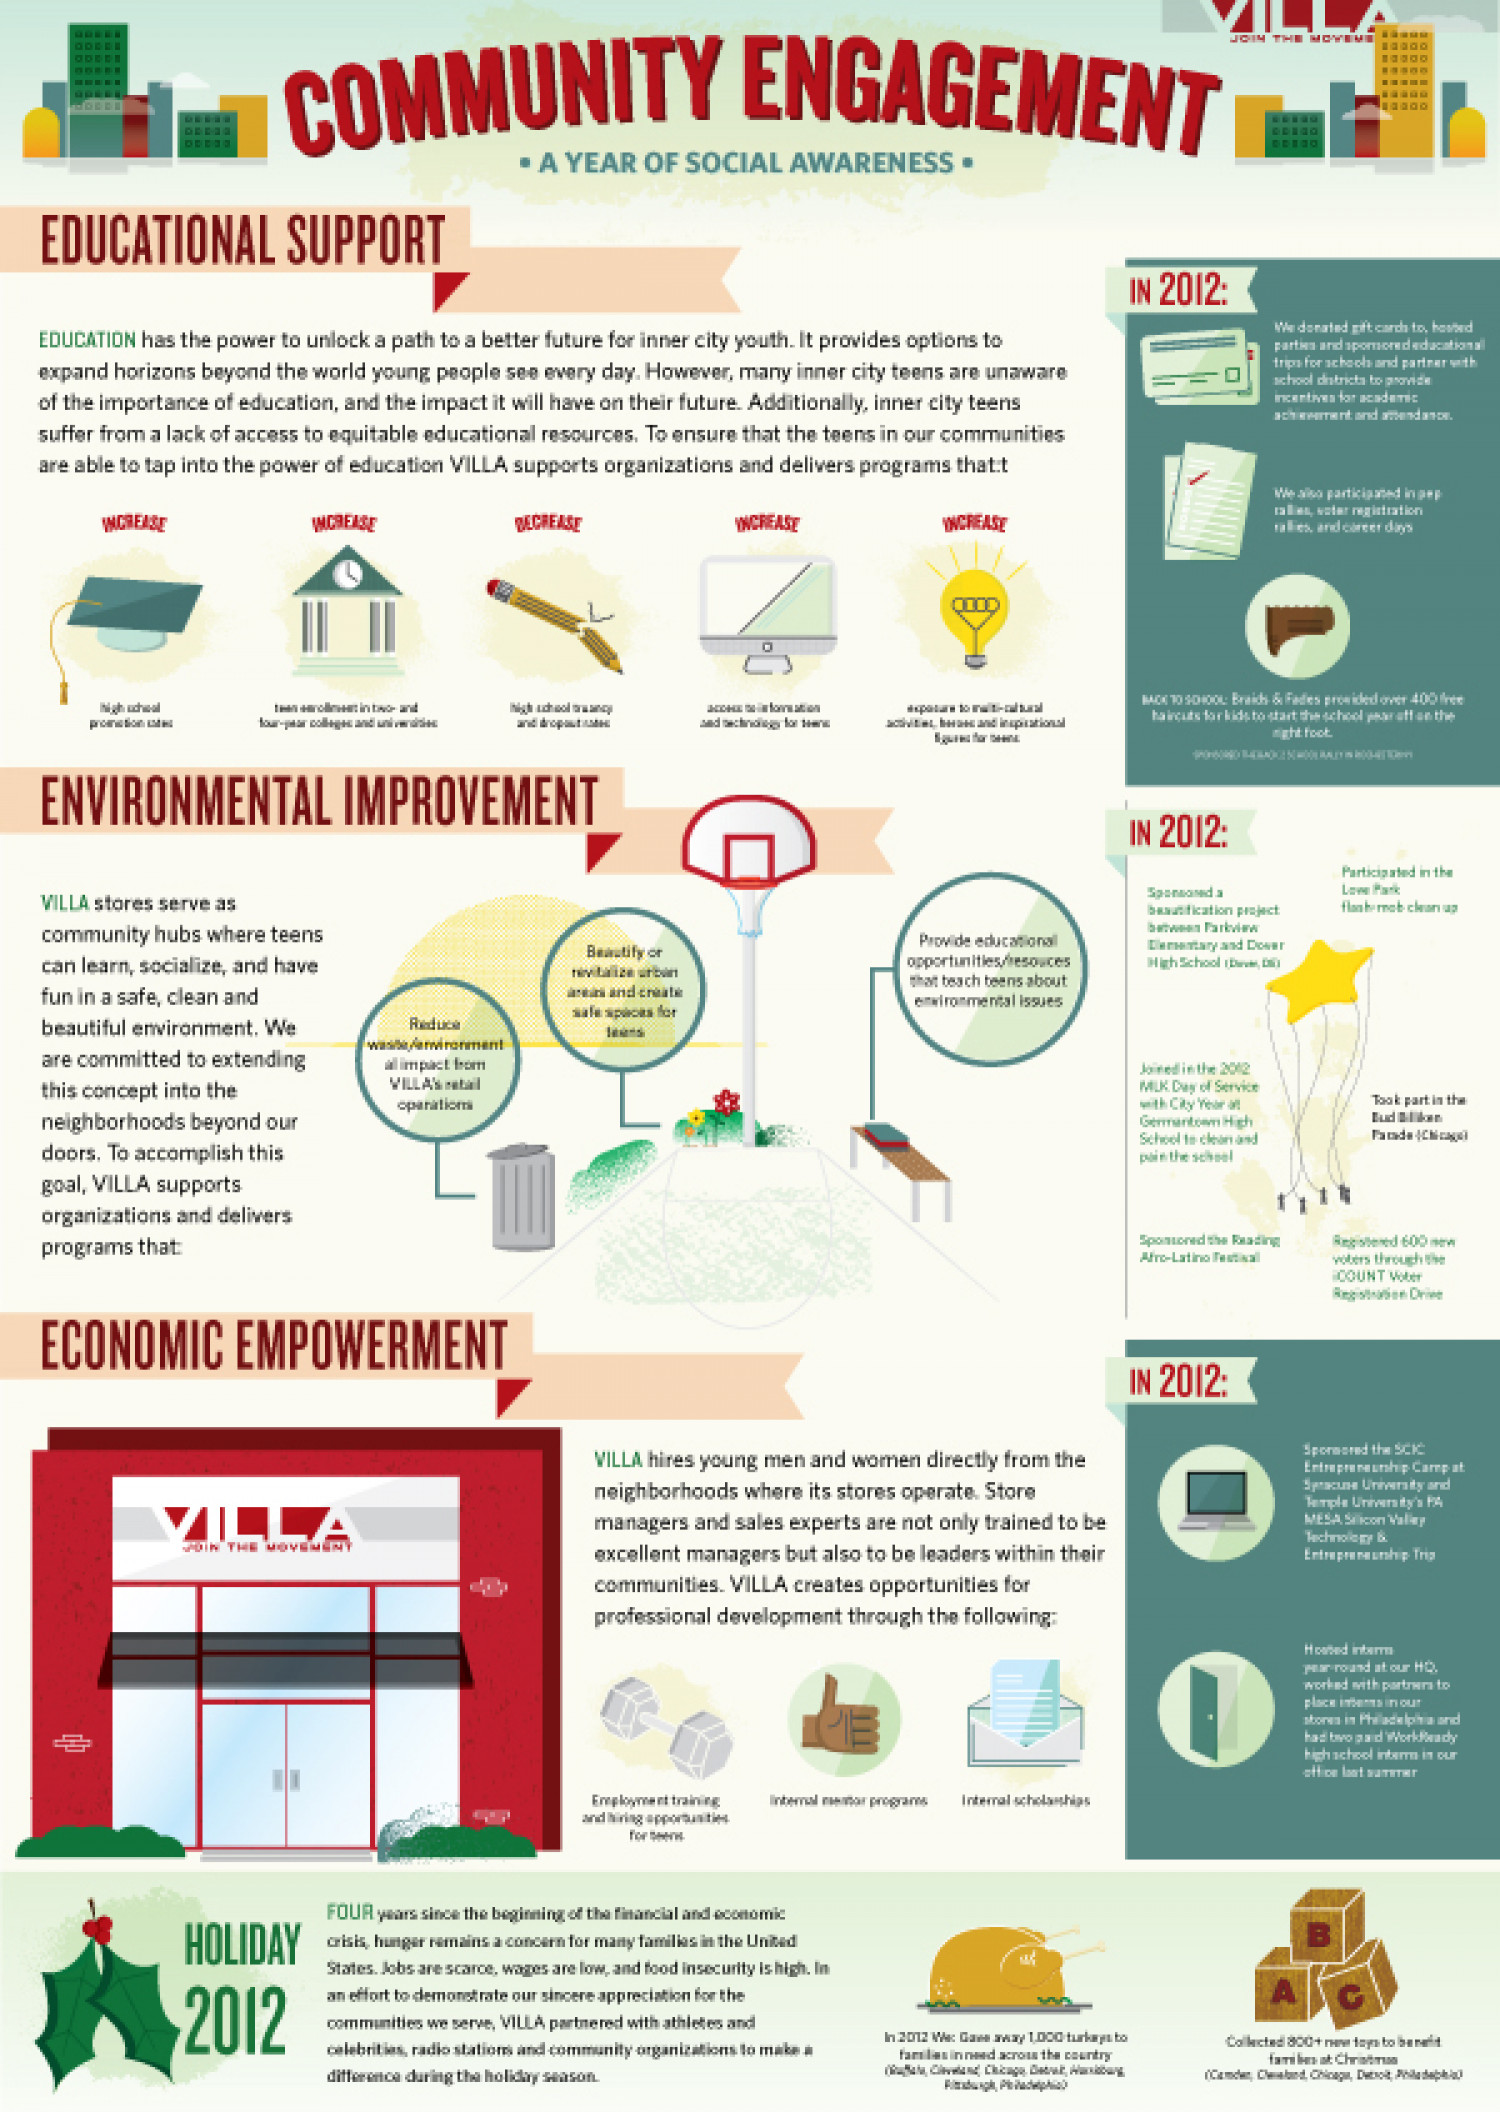 Community Engagement Infographic